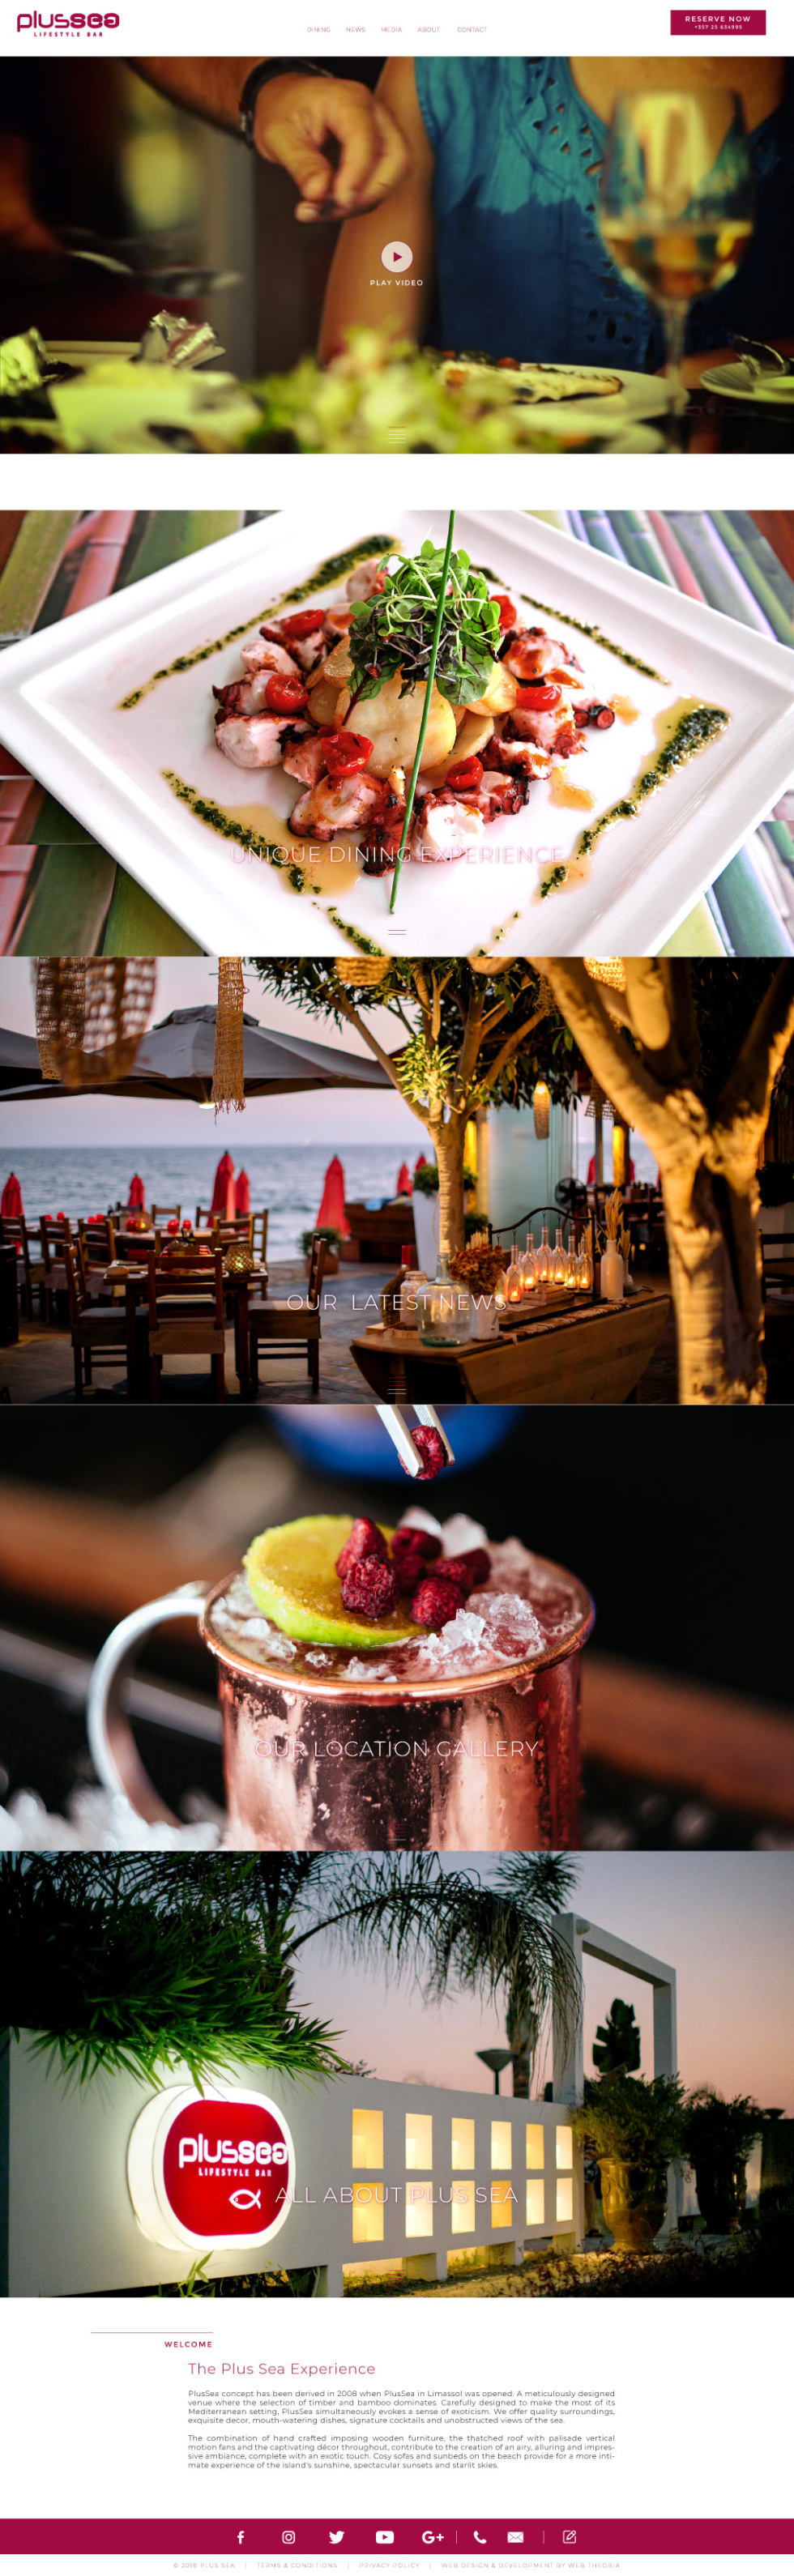 Website design for beach bar restaurant. Images of plates, drinks, and views cover the entire page in even sections.